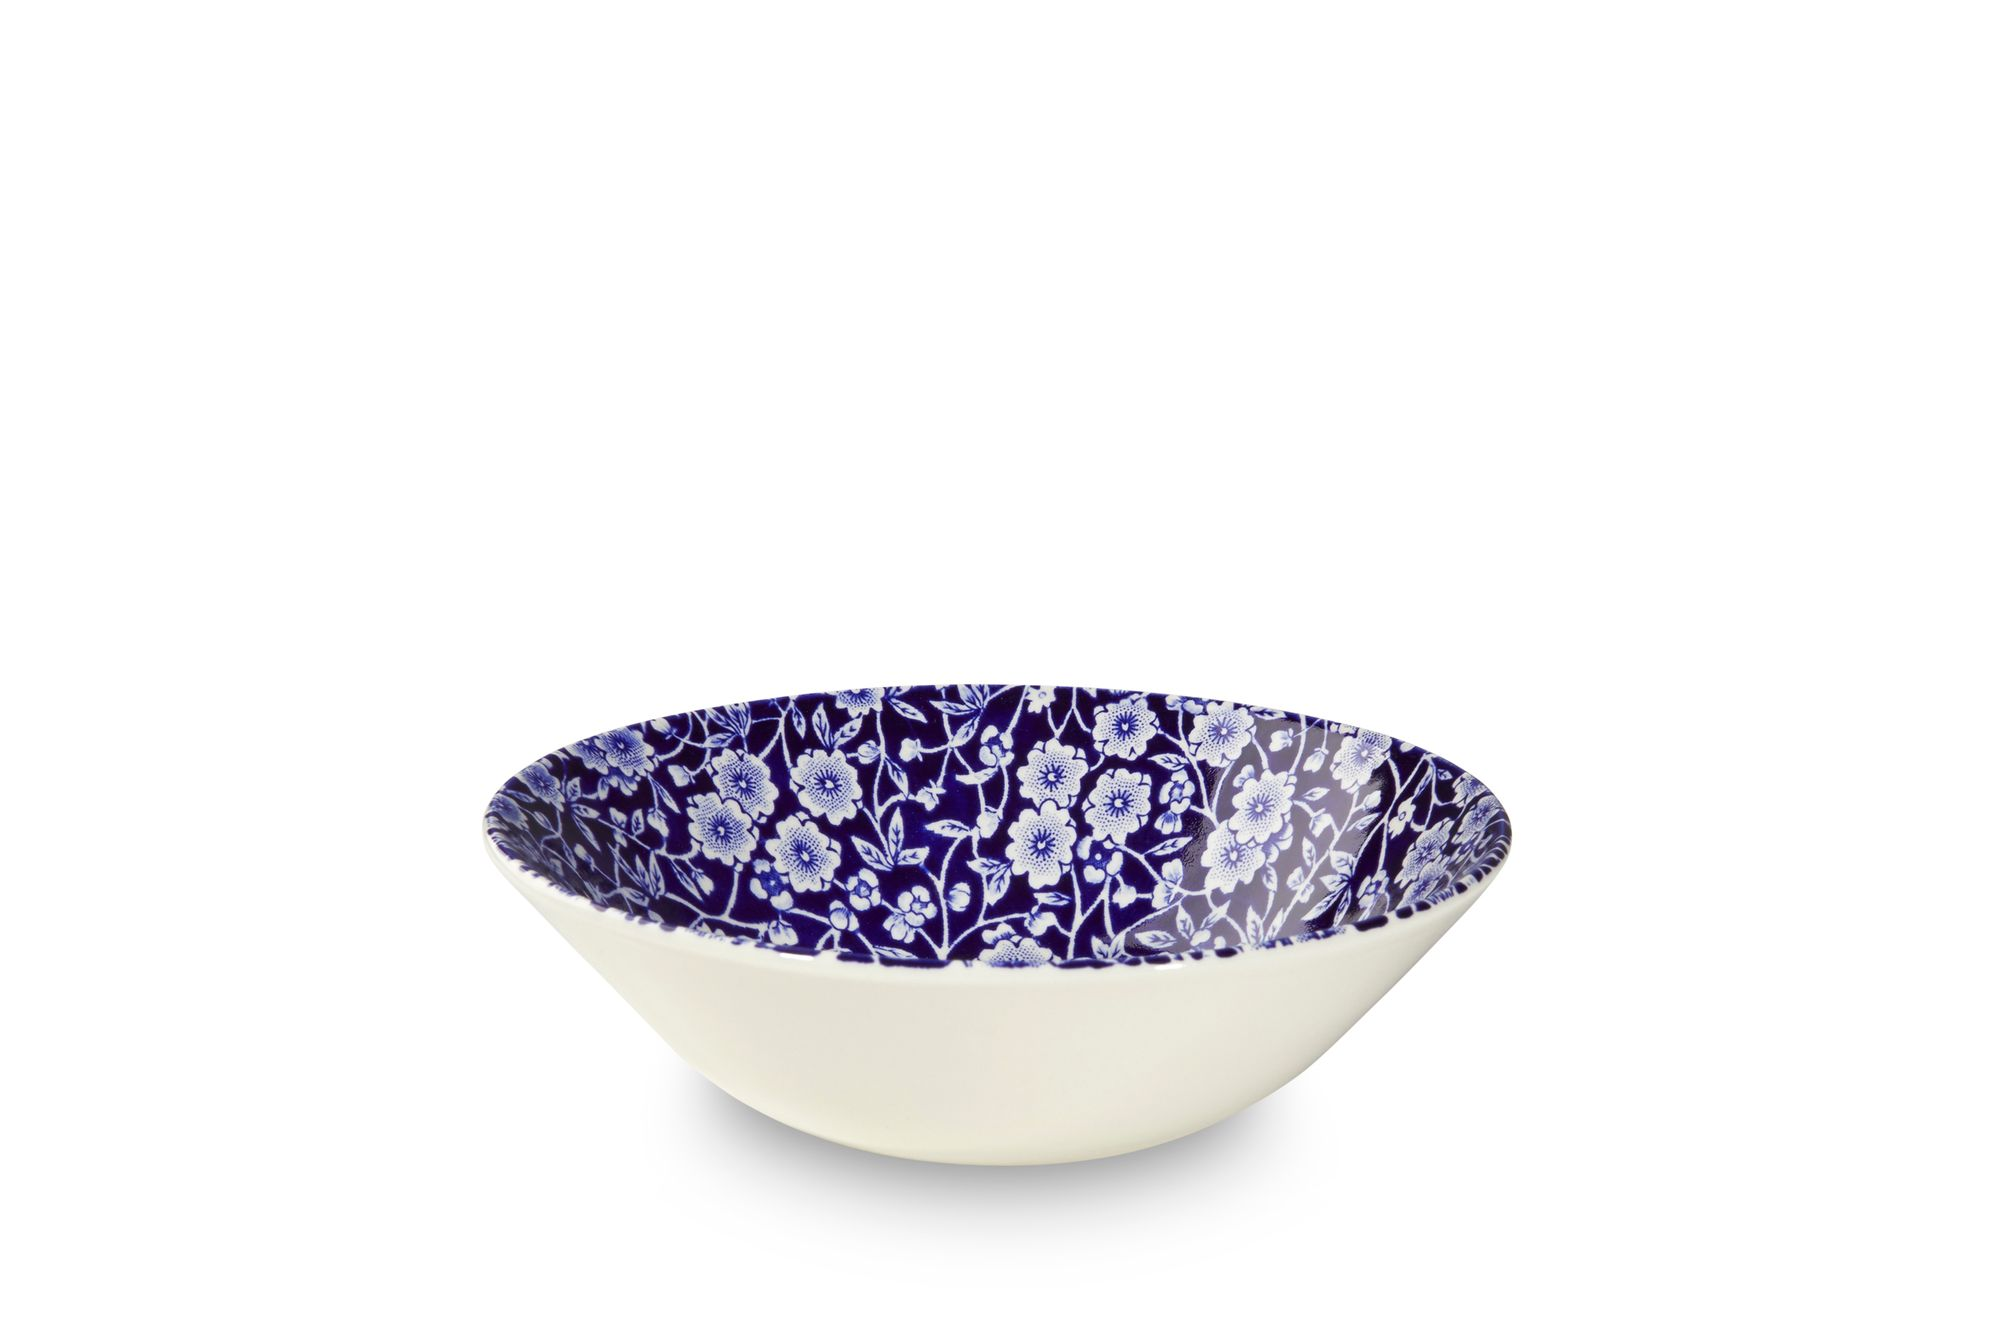 "Burleigh Blue Calico Oatmeal / Cereal / Soup 6 1/4"" thumb 1"